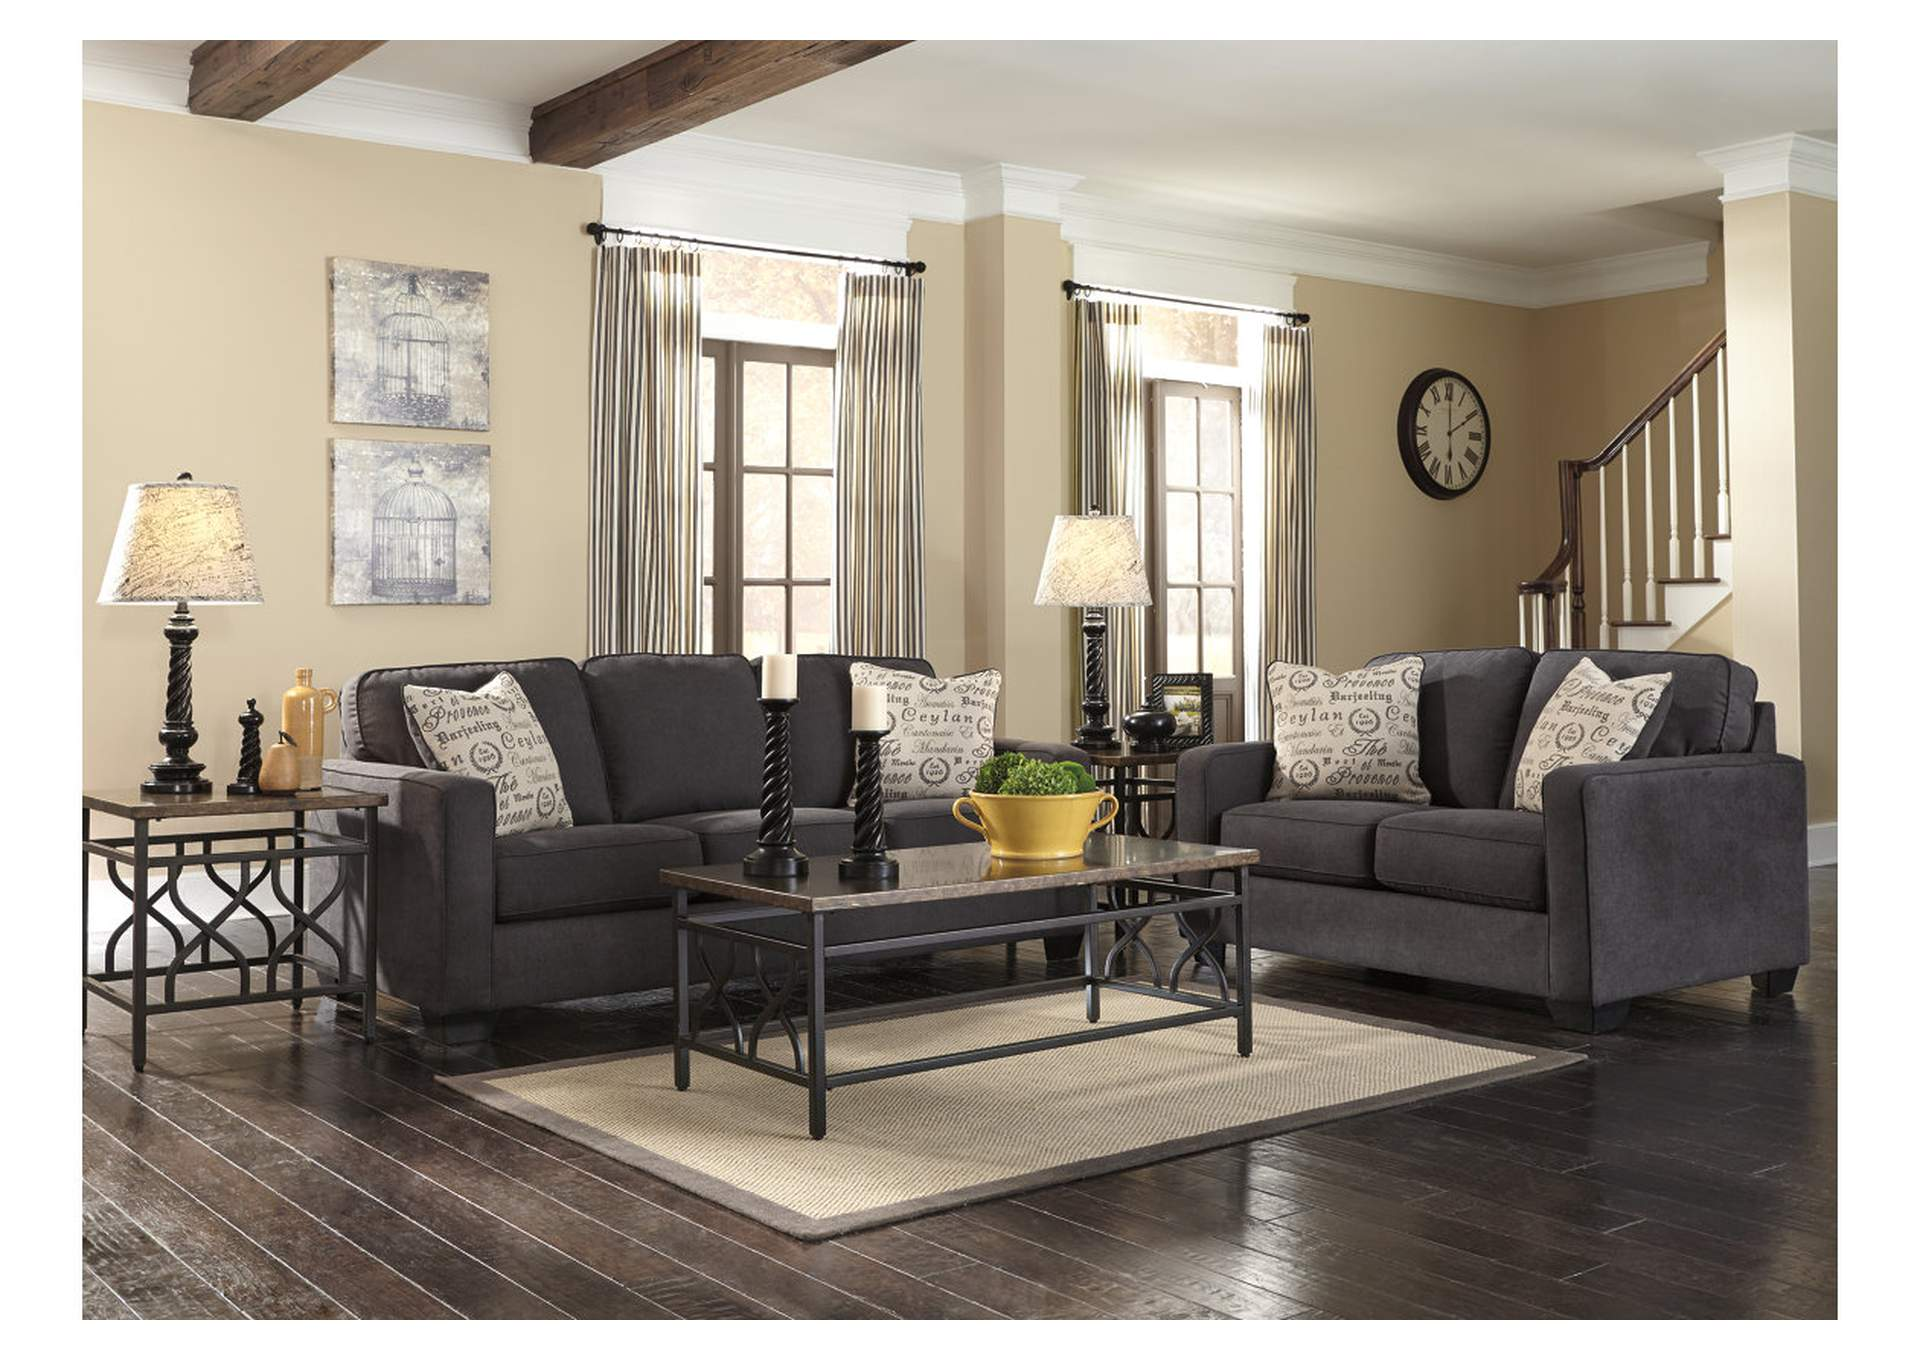 Affordable Sofa Sets for Sale Available in a Range of Diverse Styles - living room sets for sale